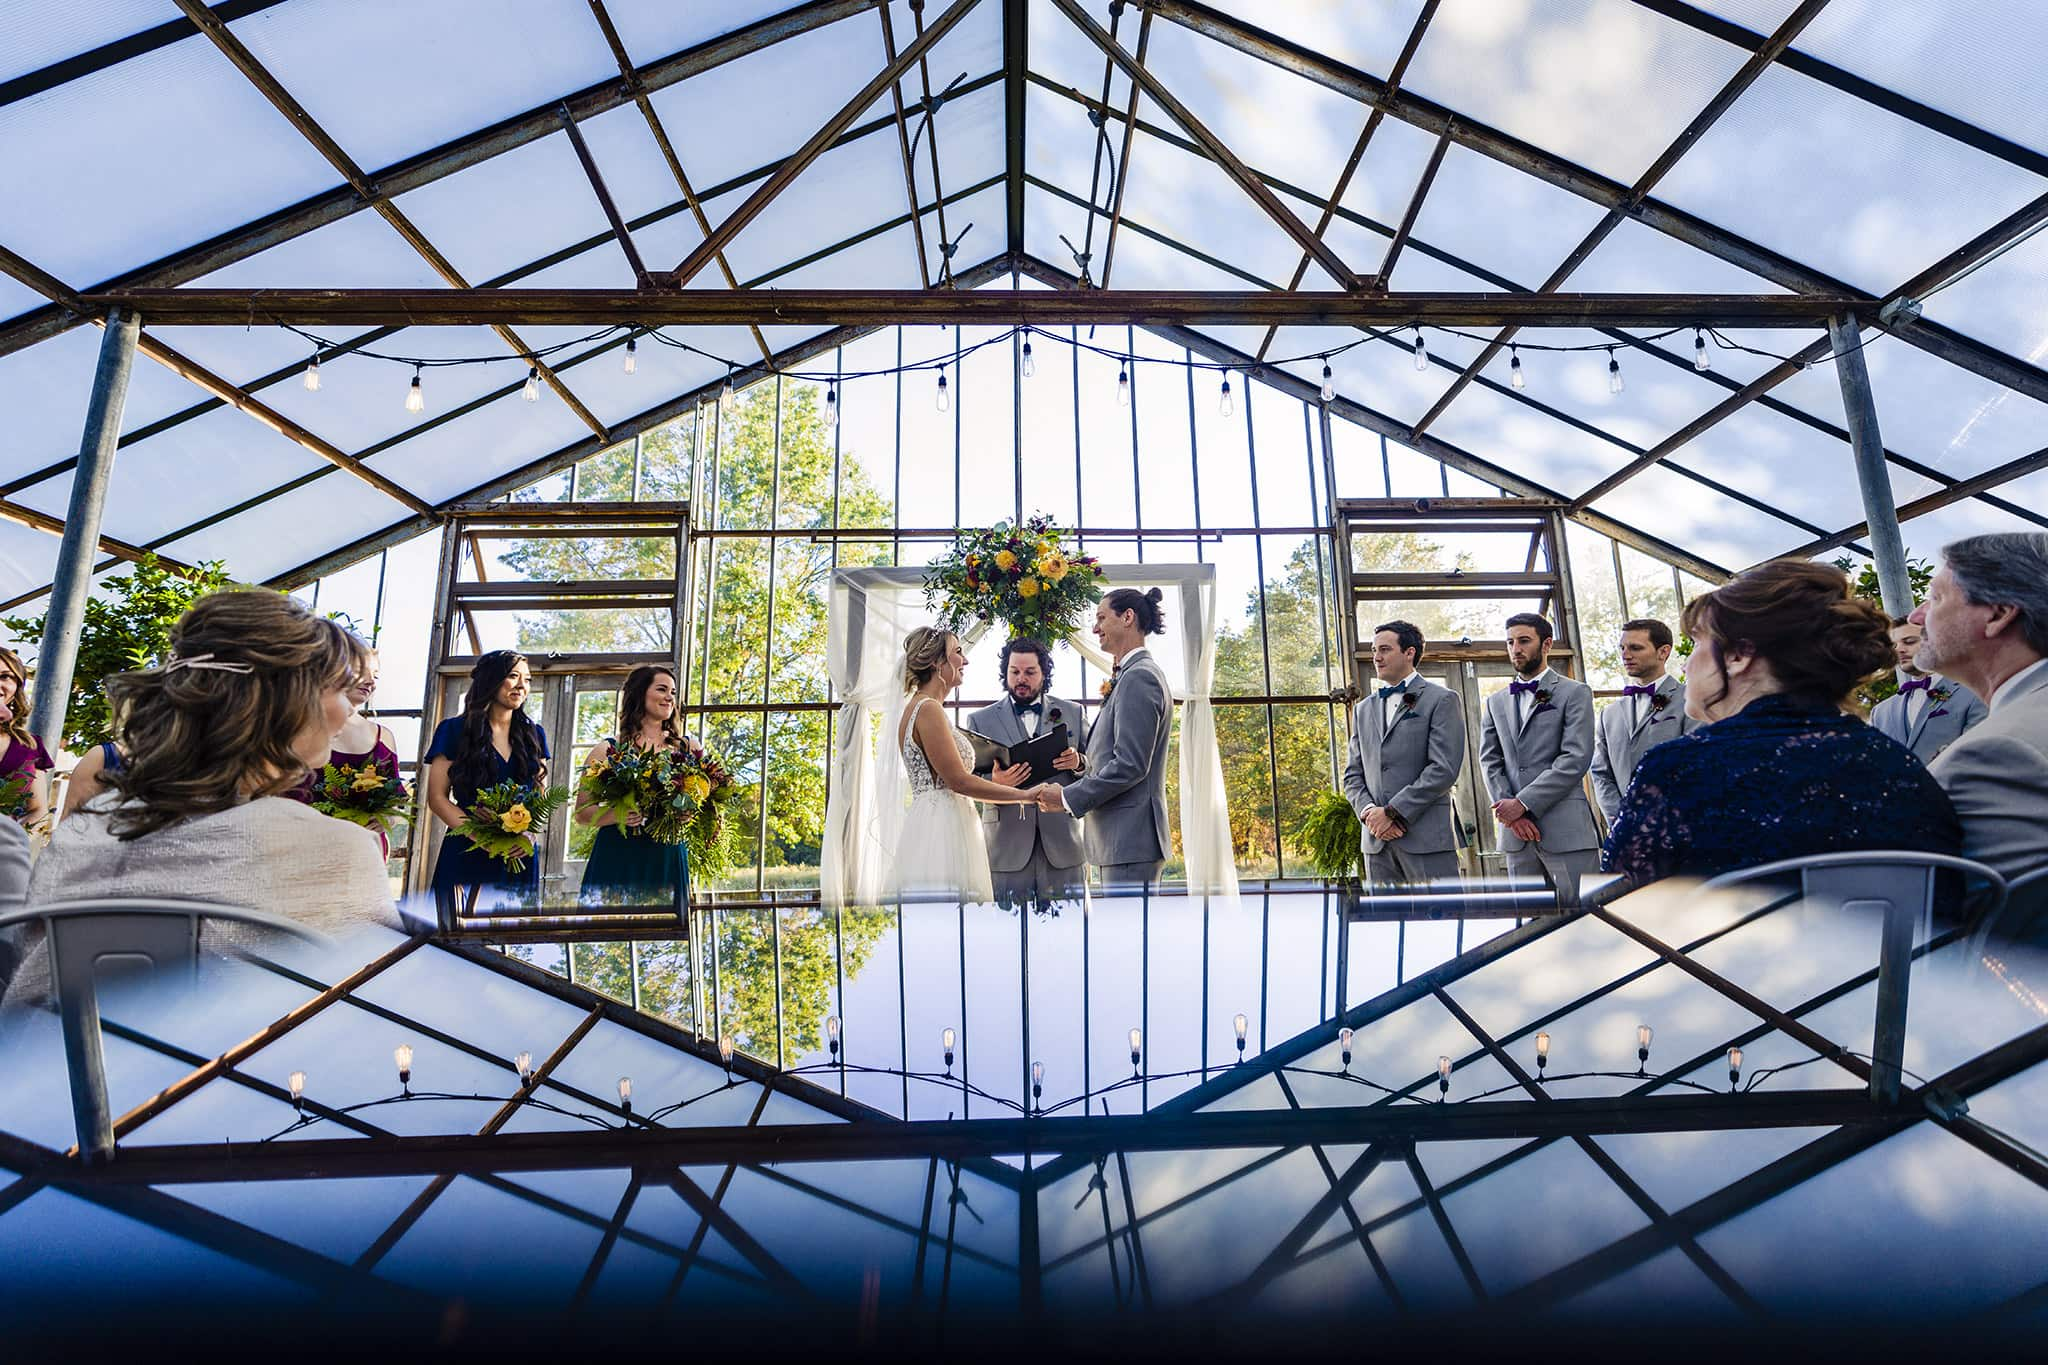 Couple gets married in modern greenhouse venue